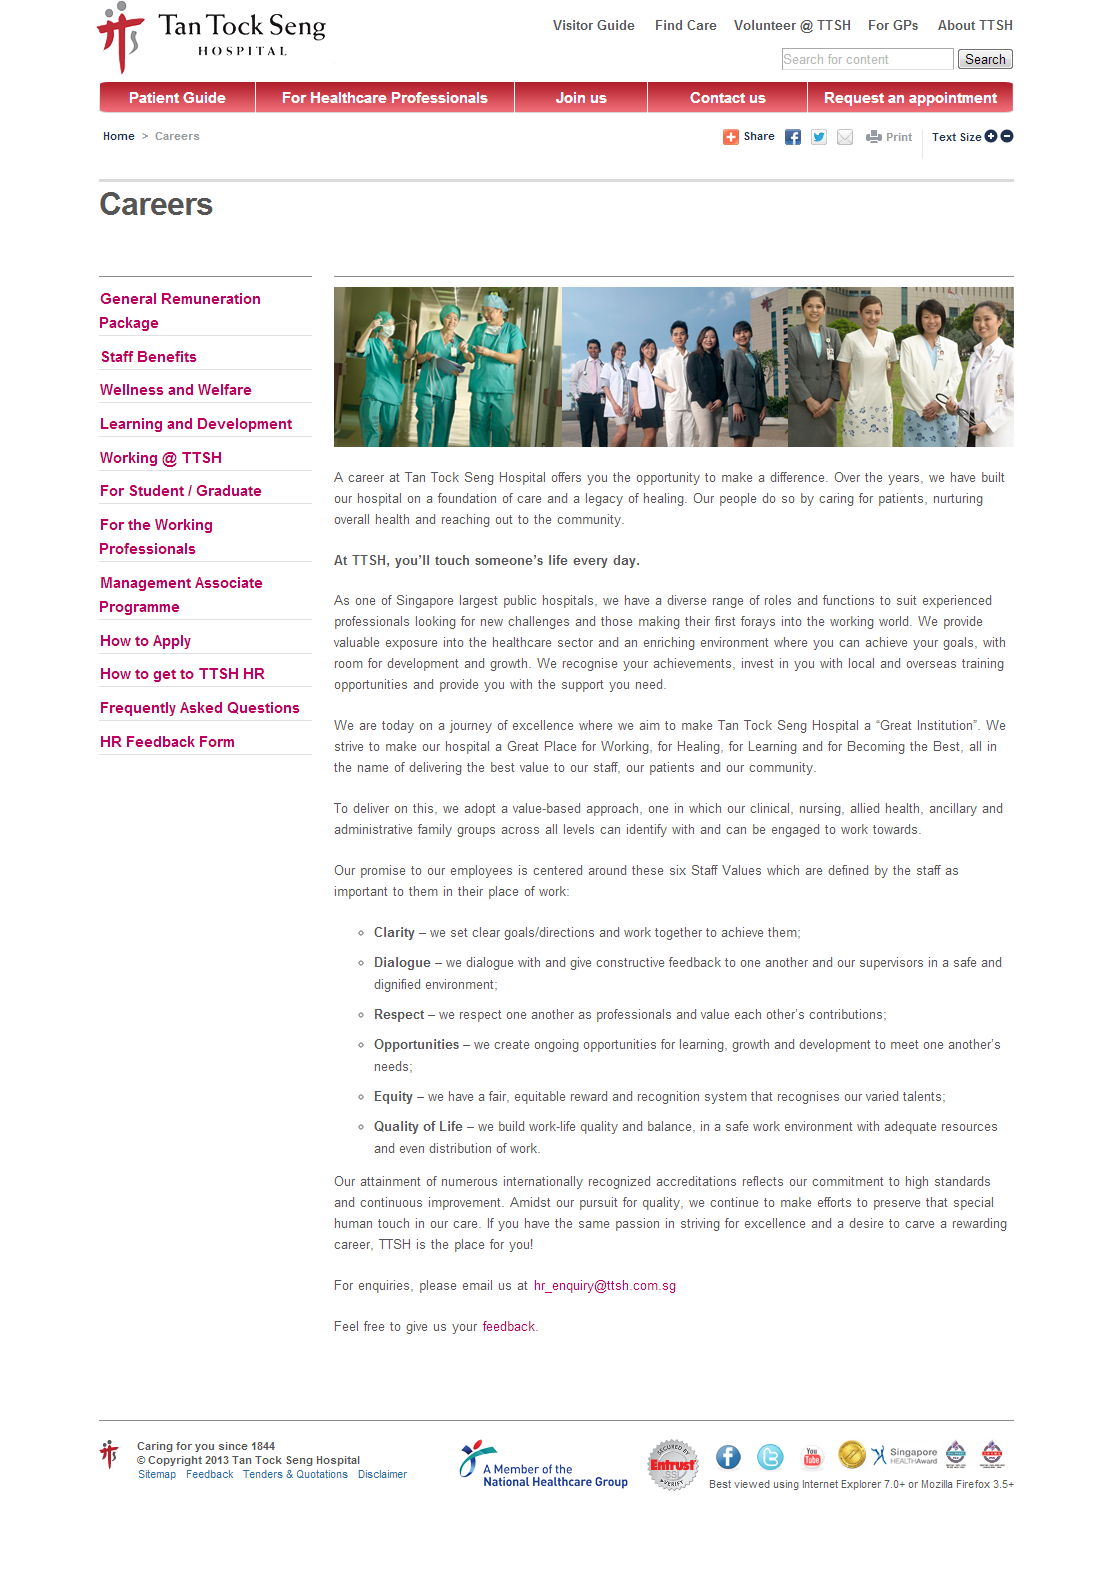 Tan Tock Seng Hospital Corporate Website Image 1